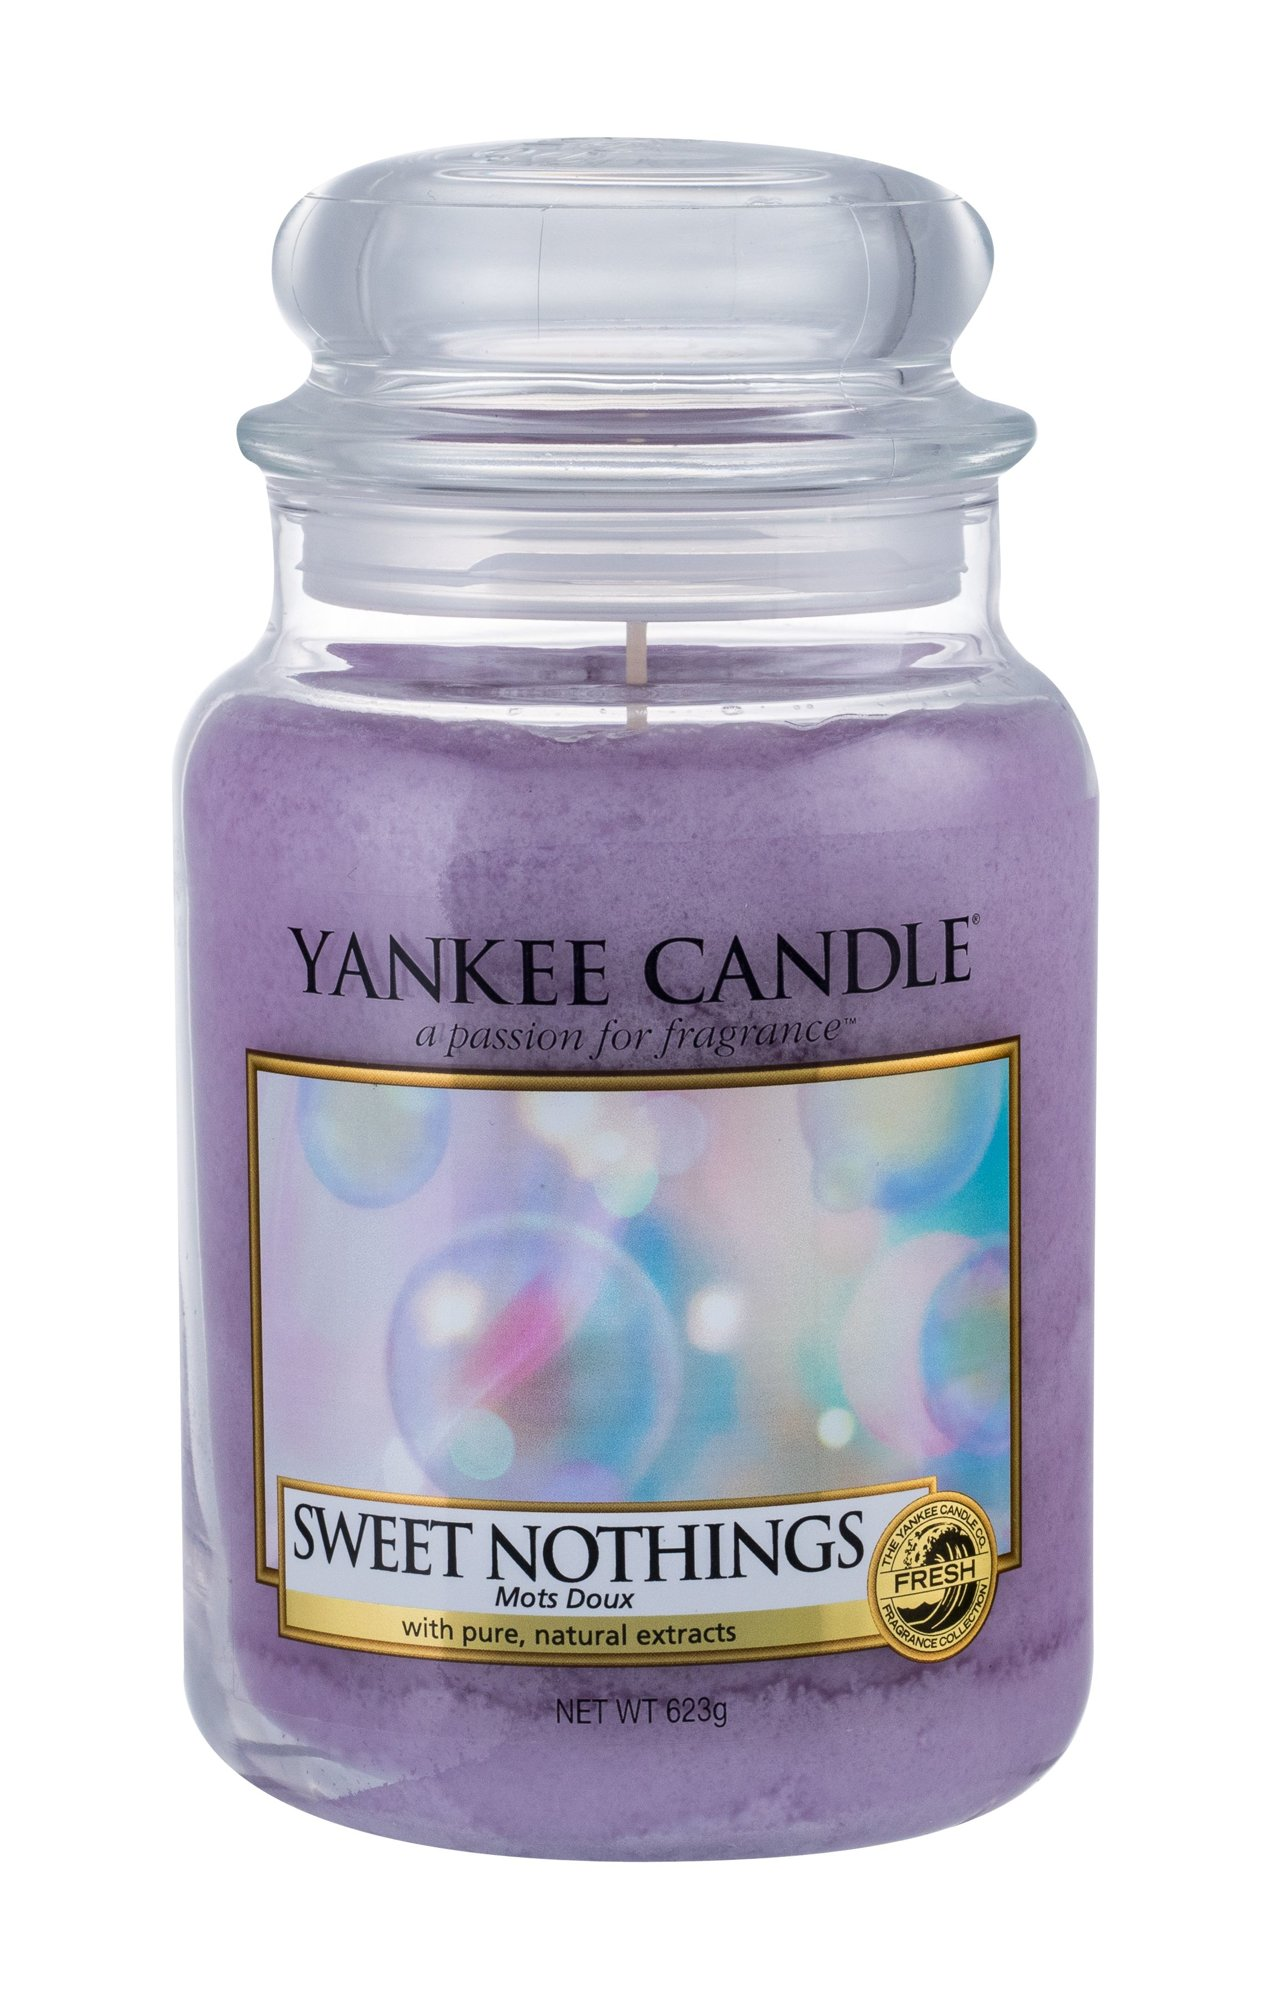 Kvepalai Yankee Candle Sweet Nothings